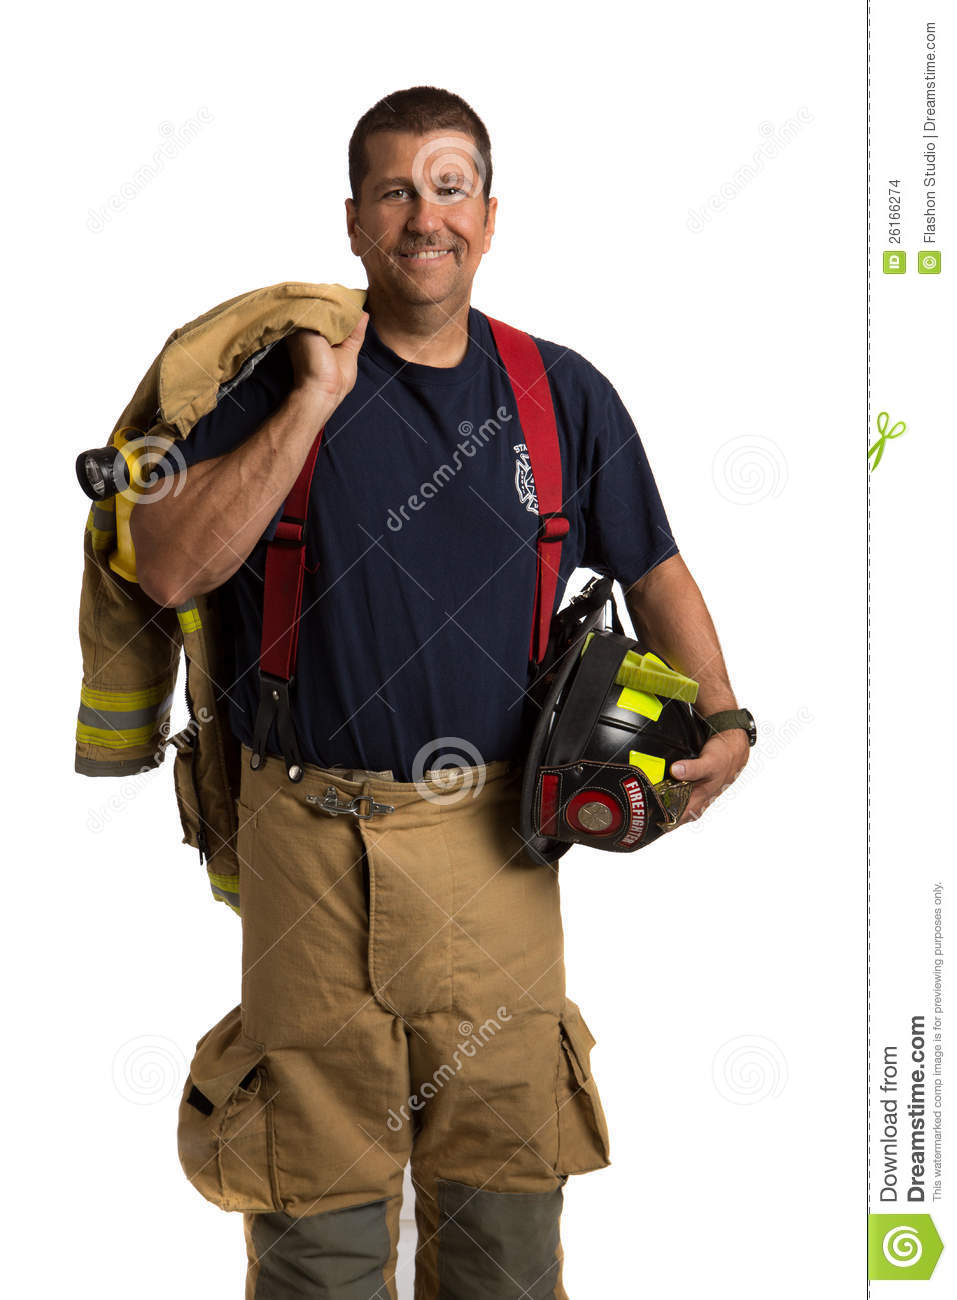 Uniformed Firefighter Standing Portrait Stock Photo